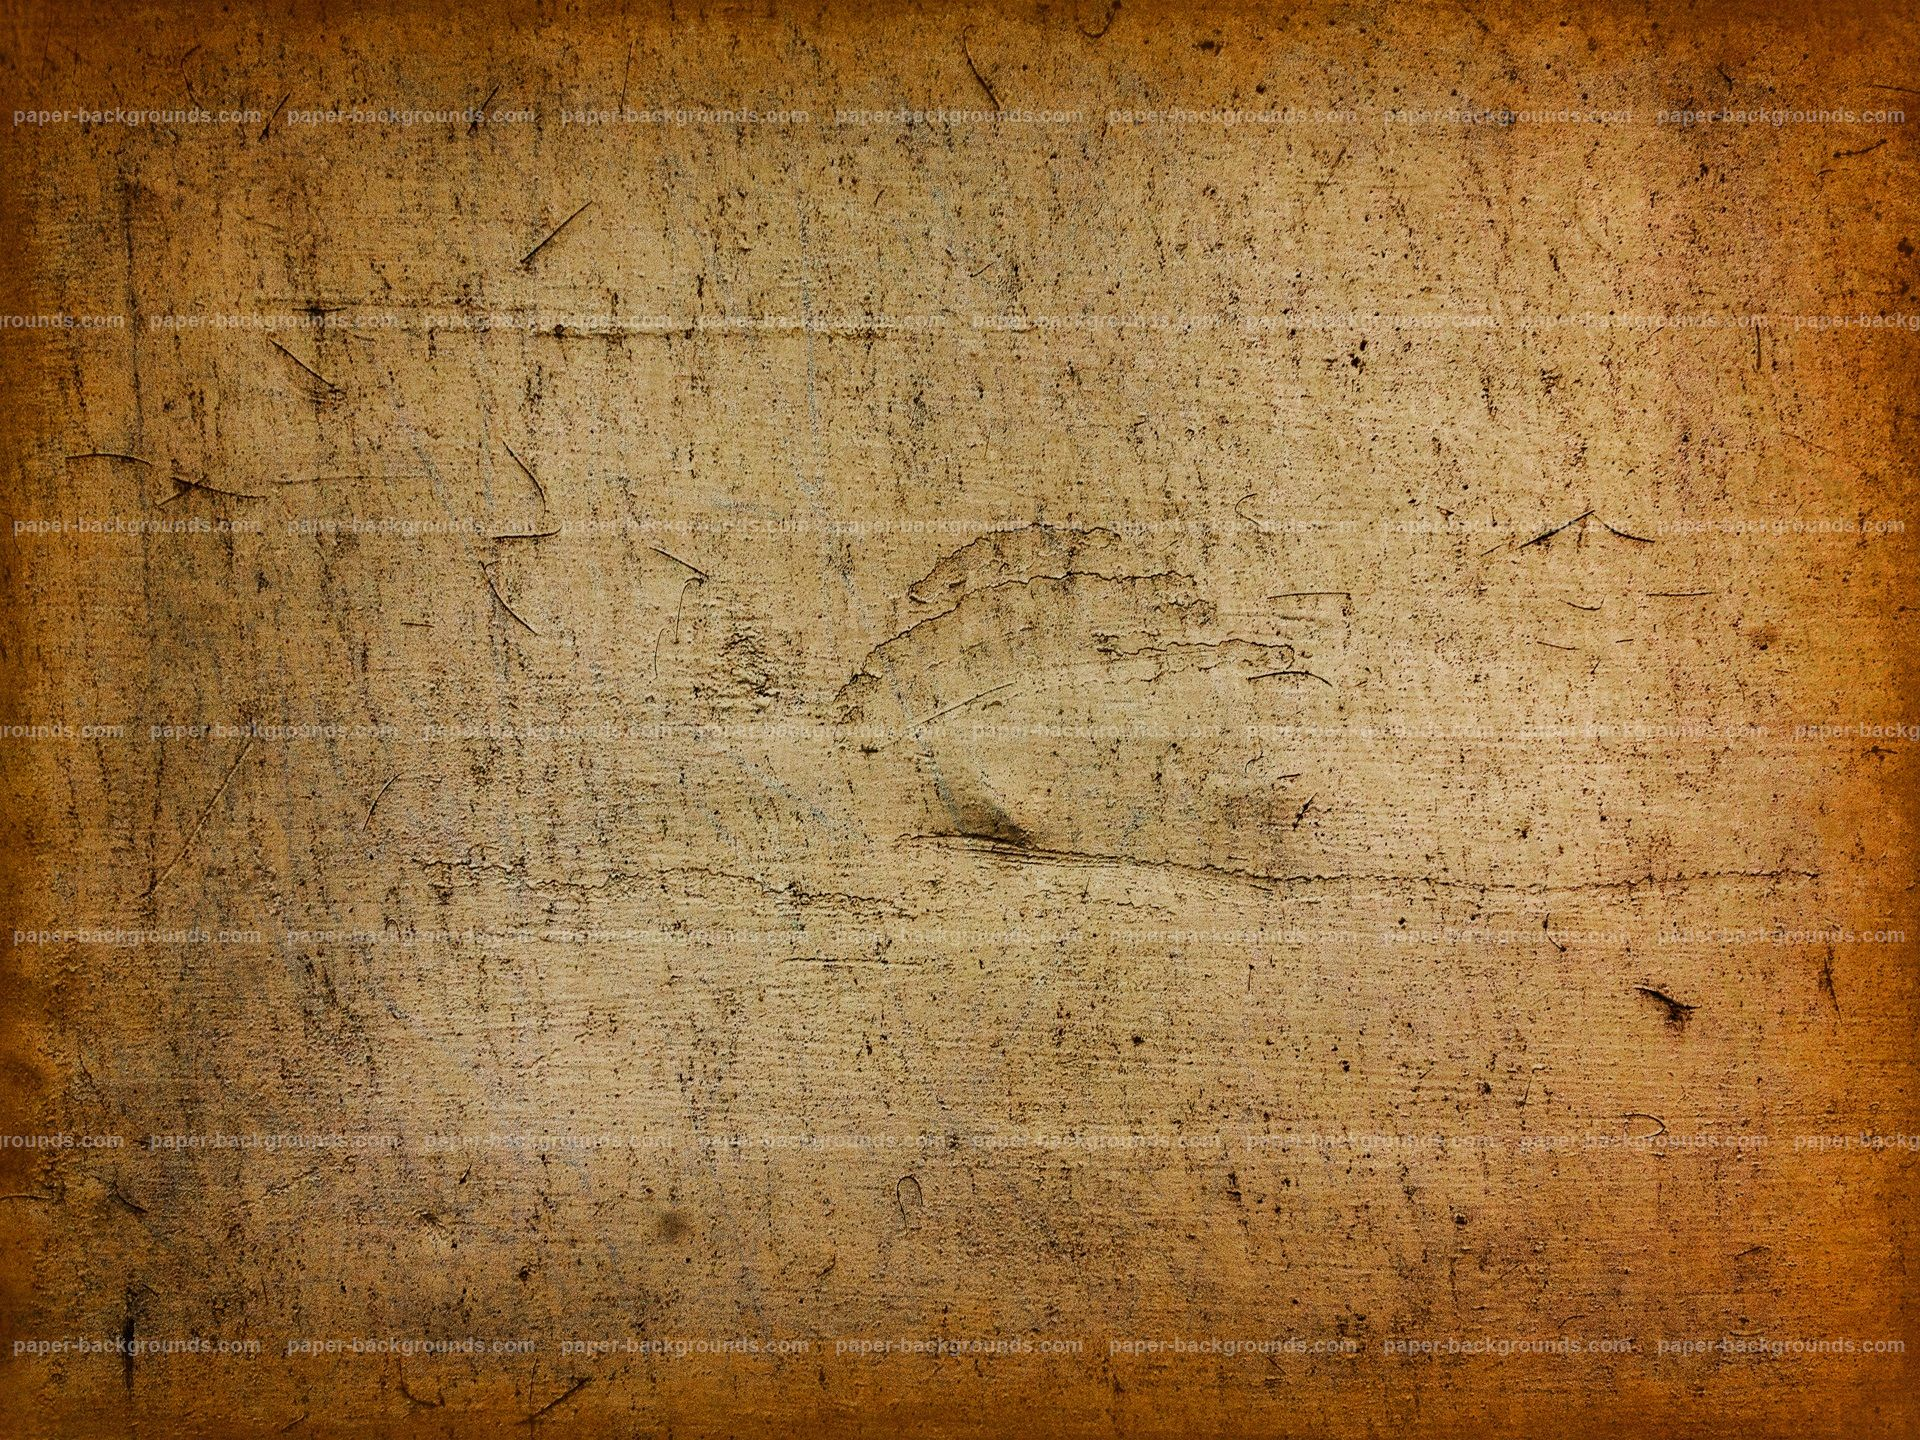 Old Yellow Vintage Background Texture Full Hd 1920 X 1280 Pixels